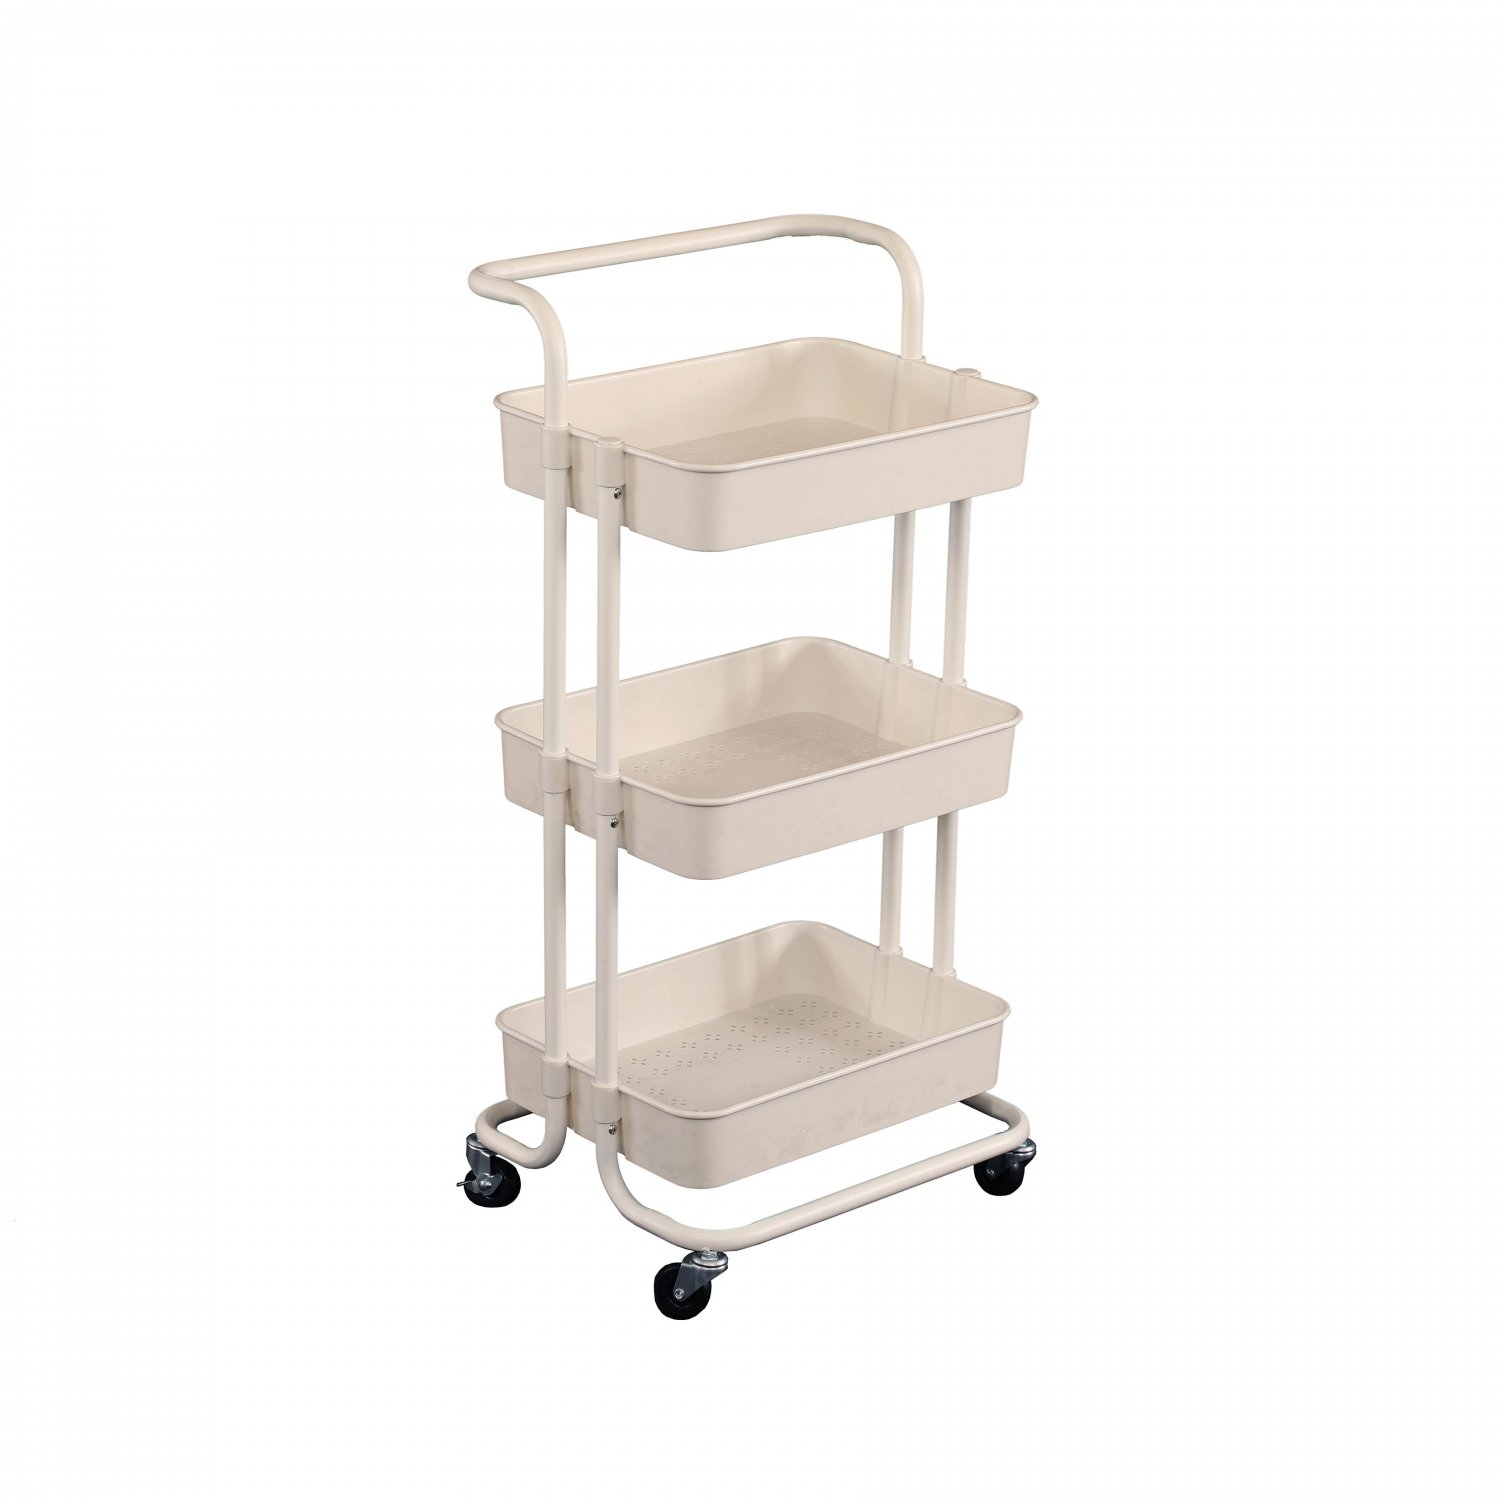 3 Tier White Household Kitchen Bathroom Storage Trolley Cart She